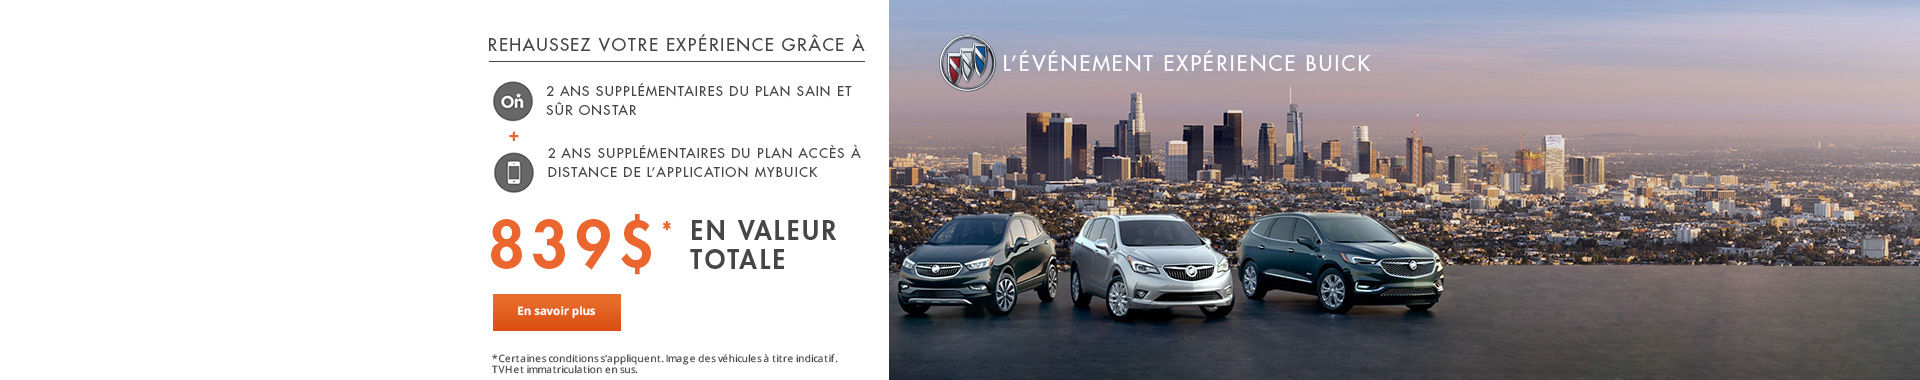 EVENT BUICK